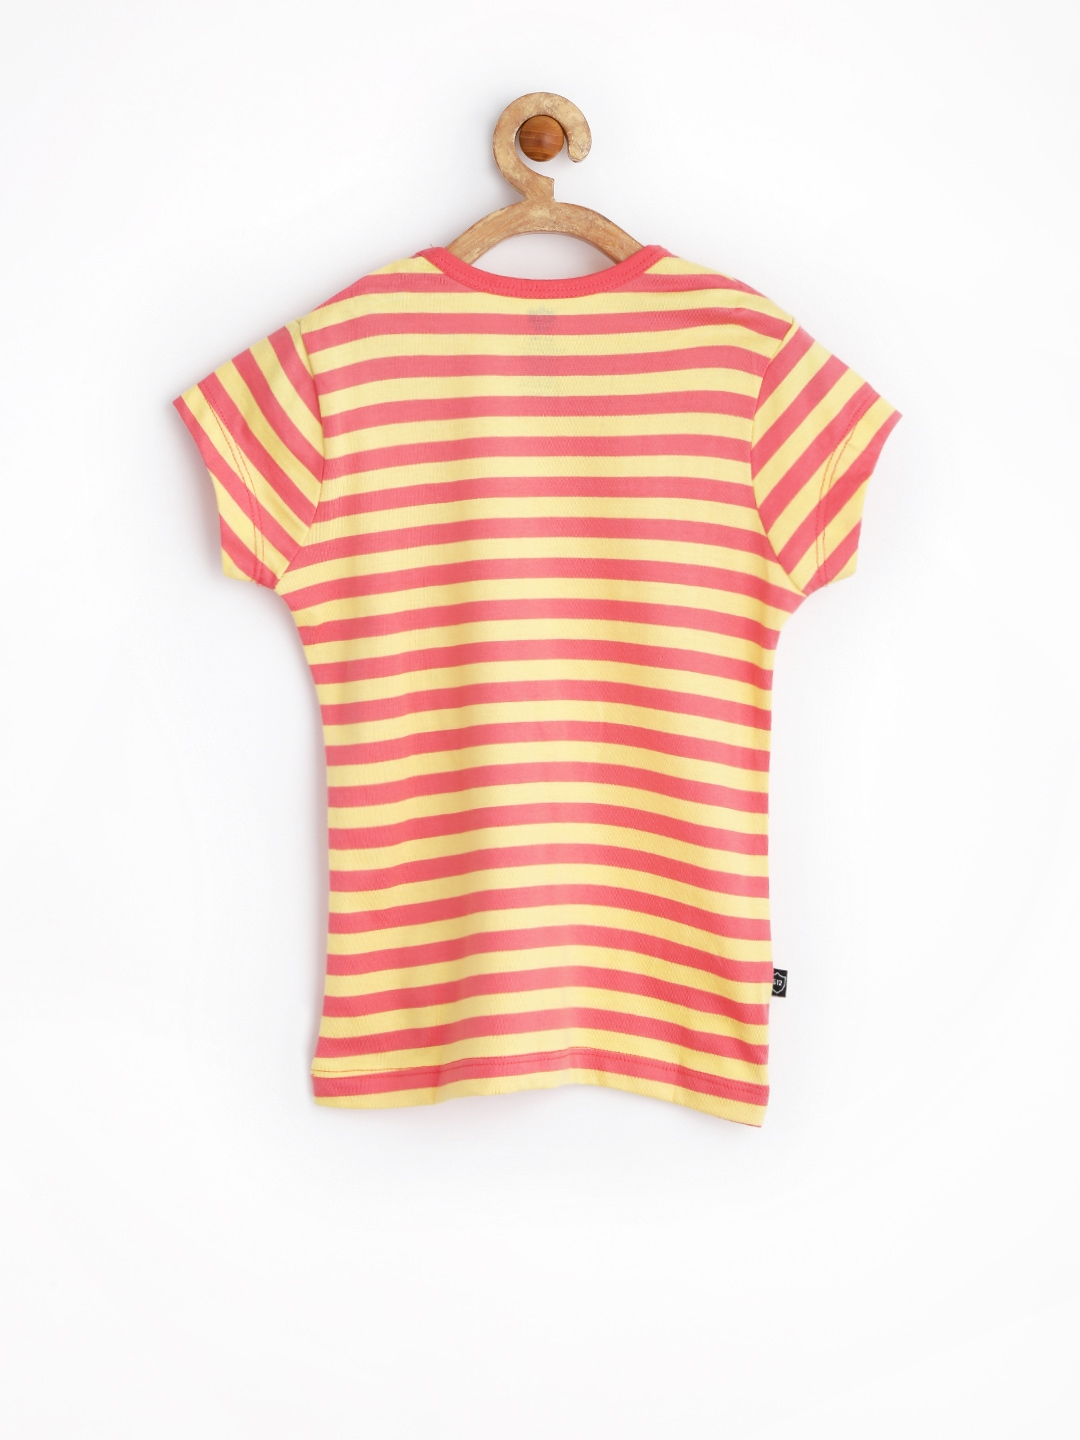 Myntra 612 League Girls Coral Pink Yellow Striped T